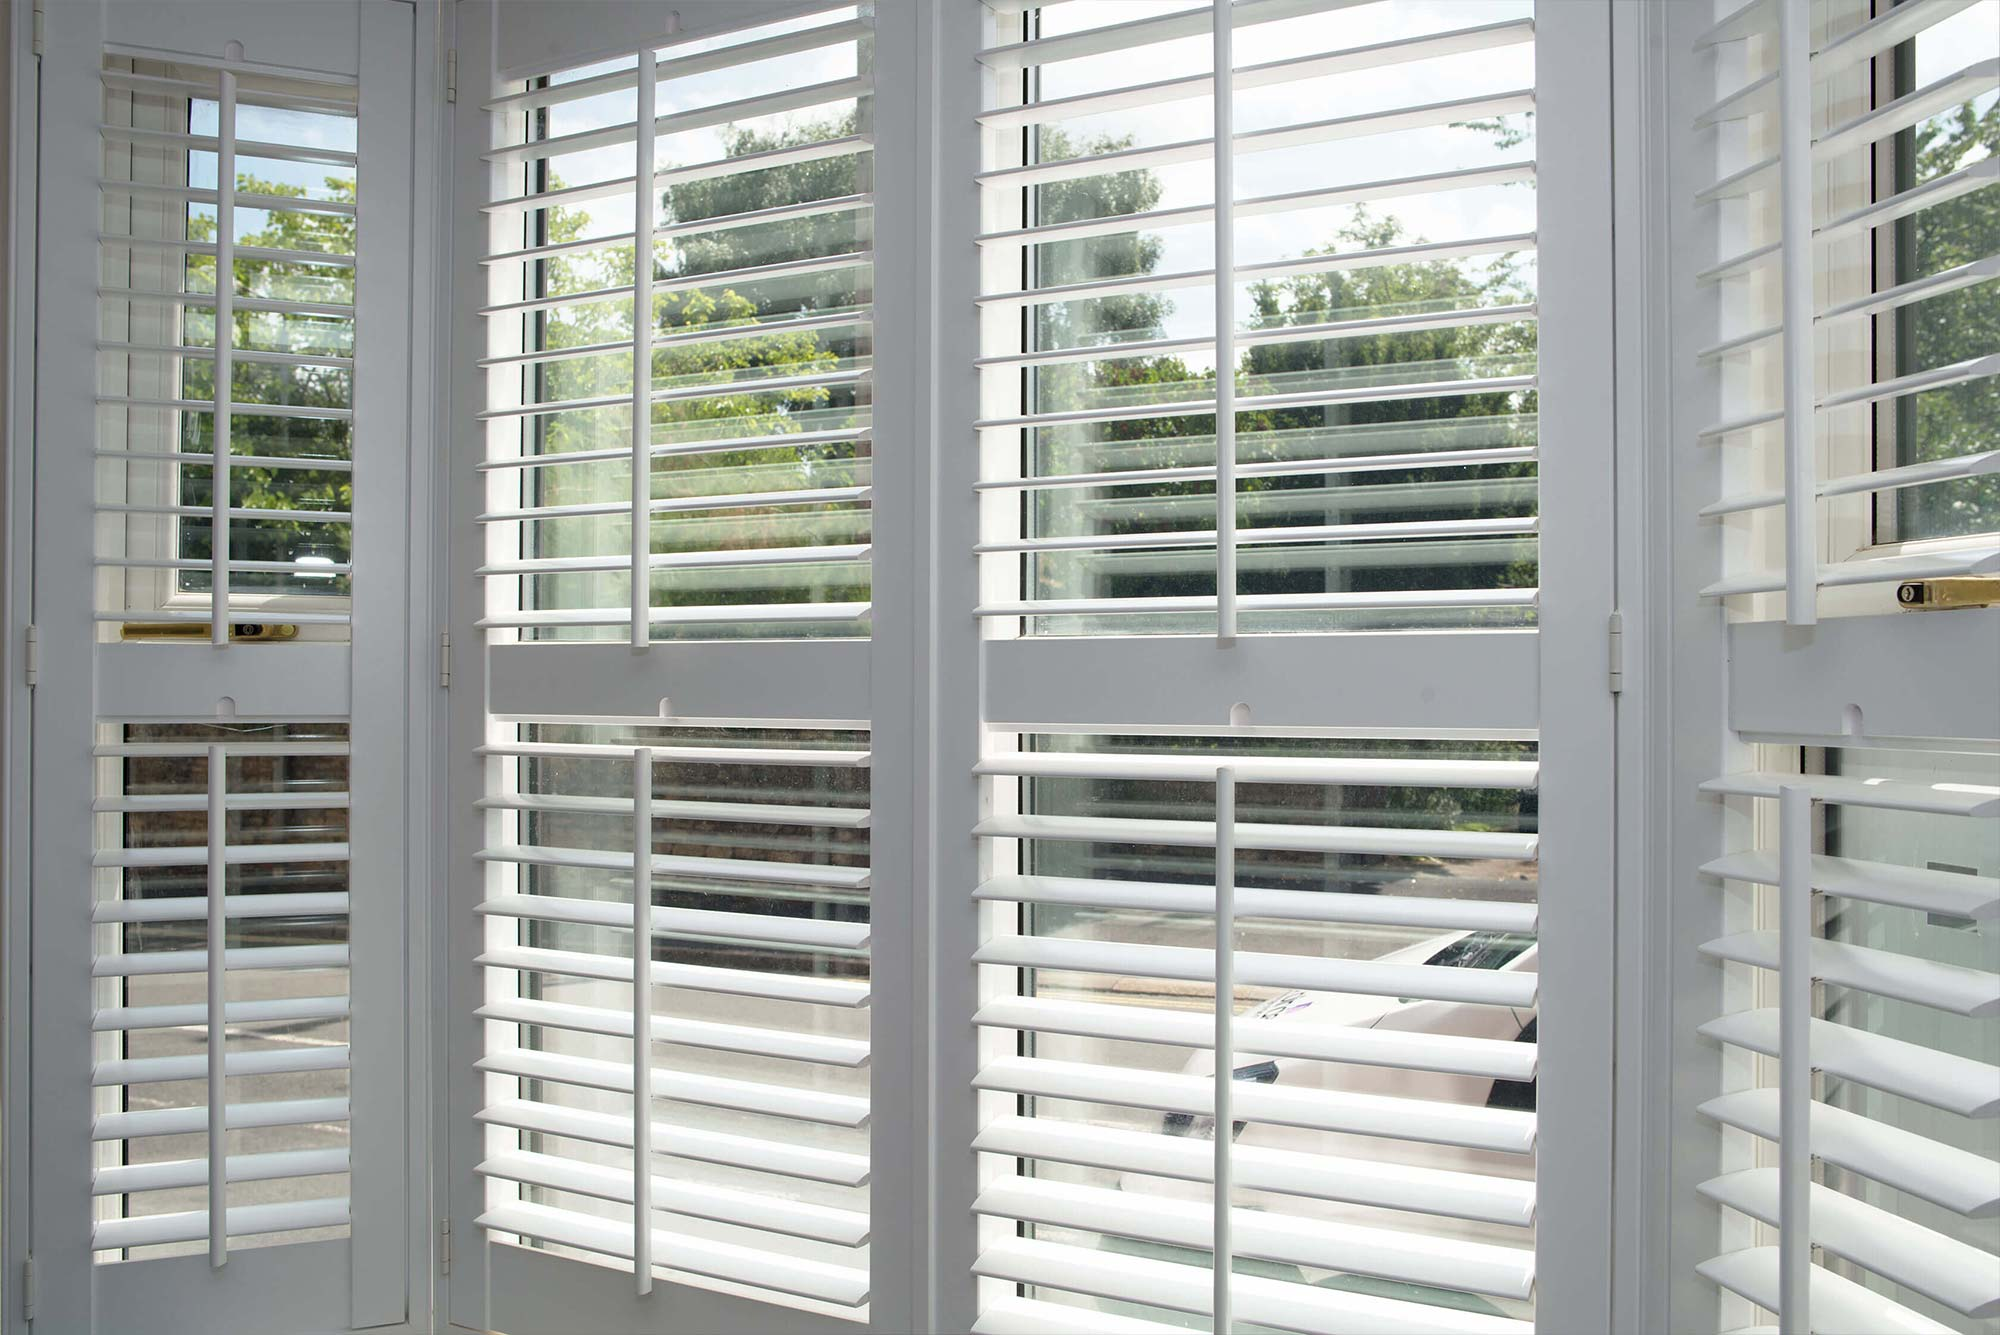 control put and back the privacy you pin day our during one blinds in at night